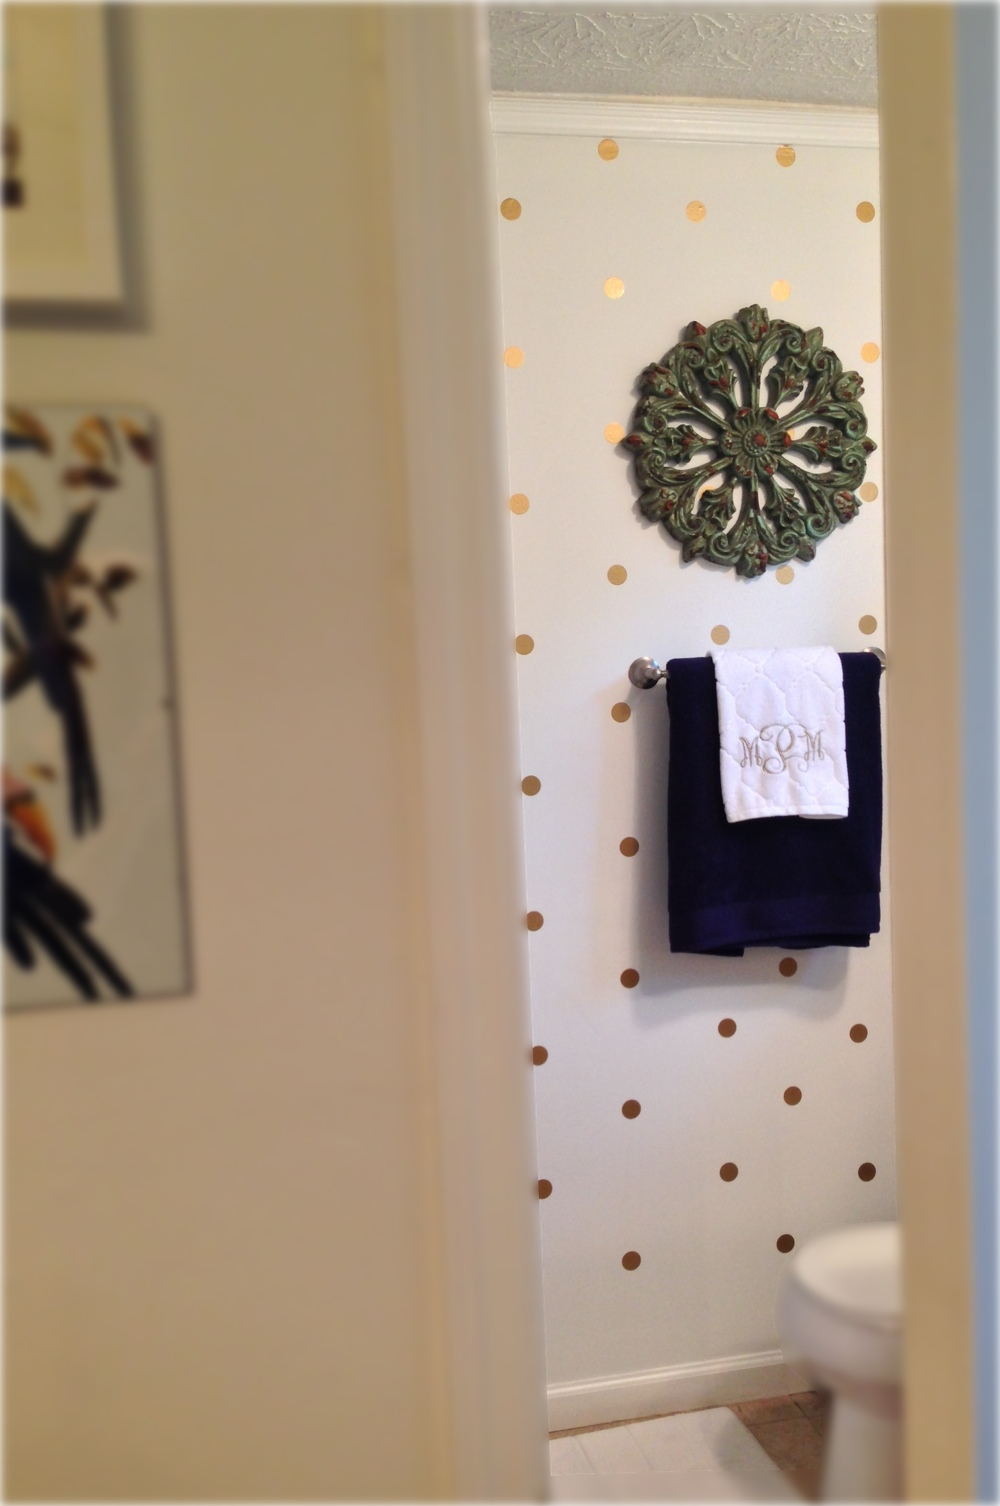 Gold Dot Decals as Wallpaper from The Lovely Wall Co.